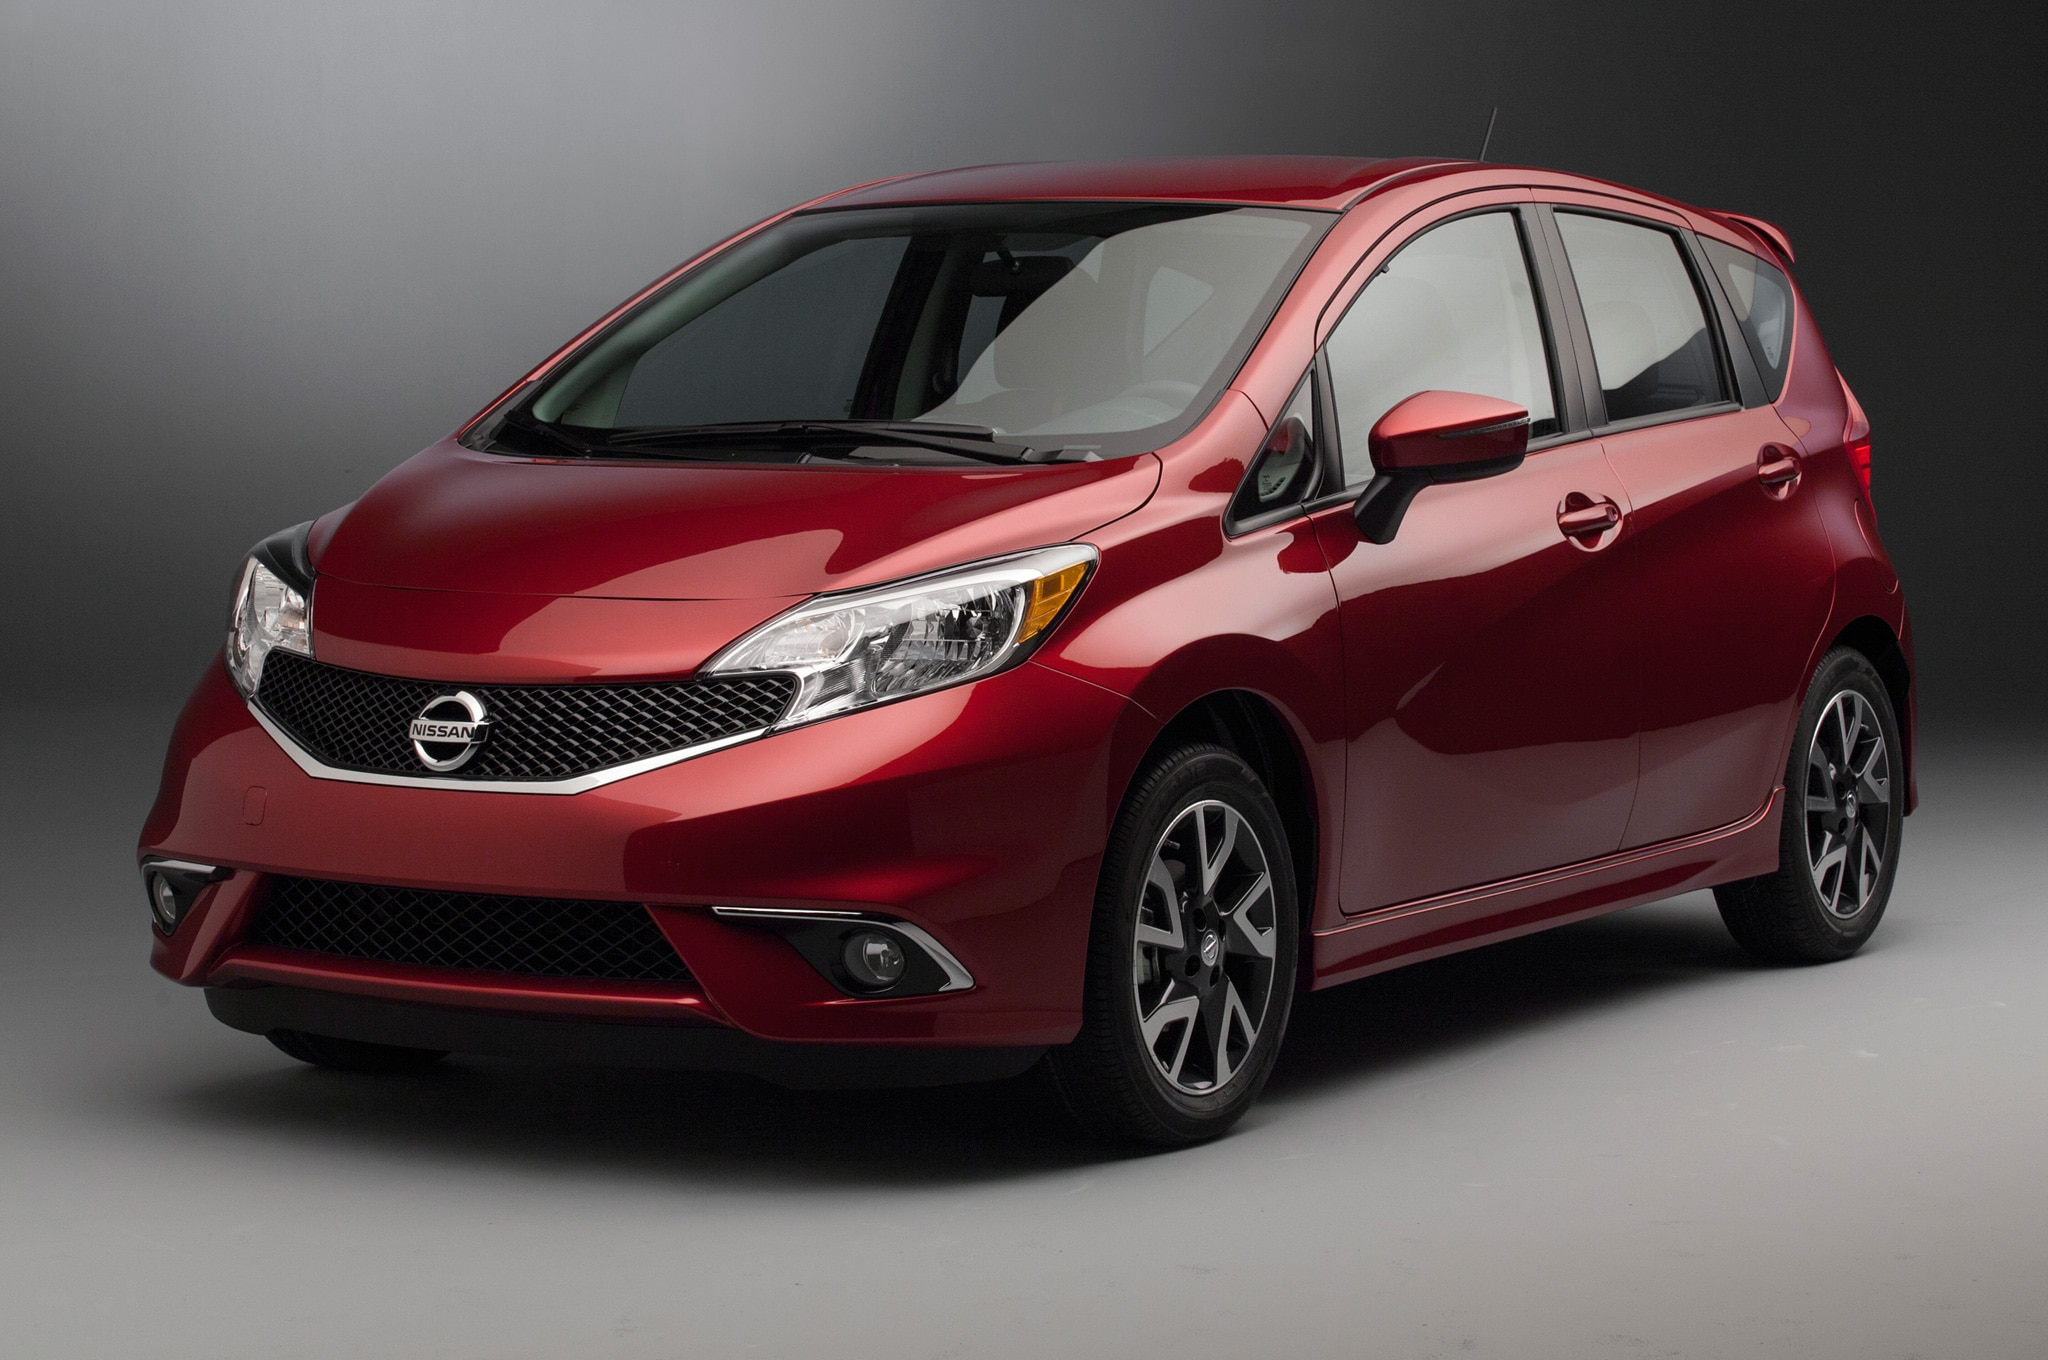 2015 Nissan Versa Note SR Front Side View1